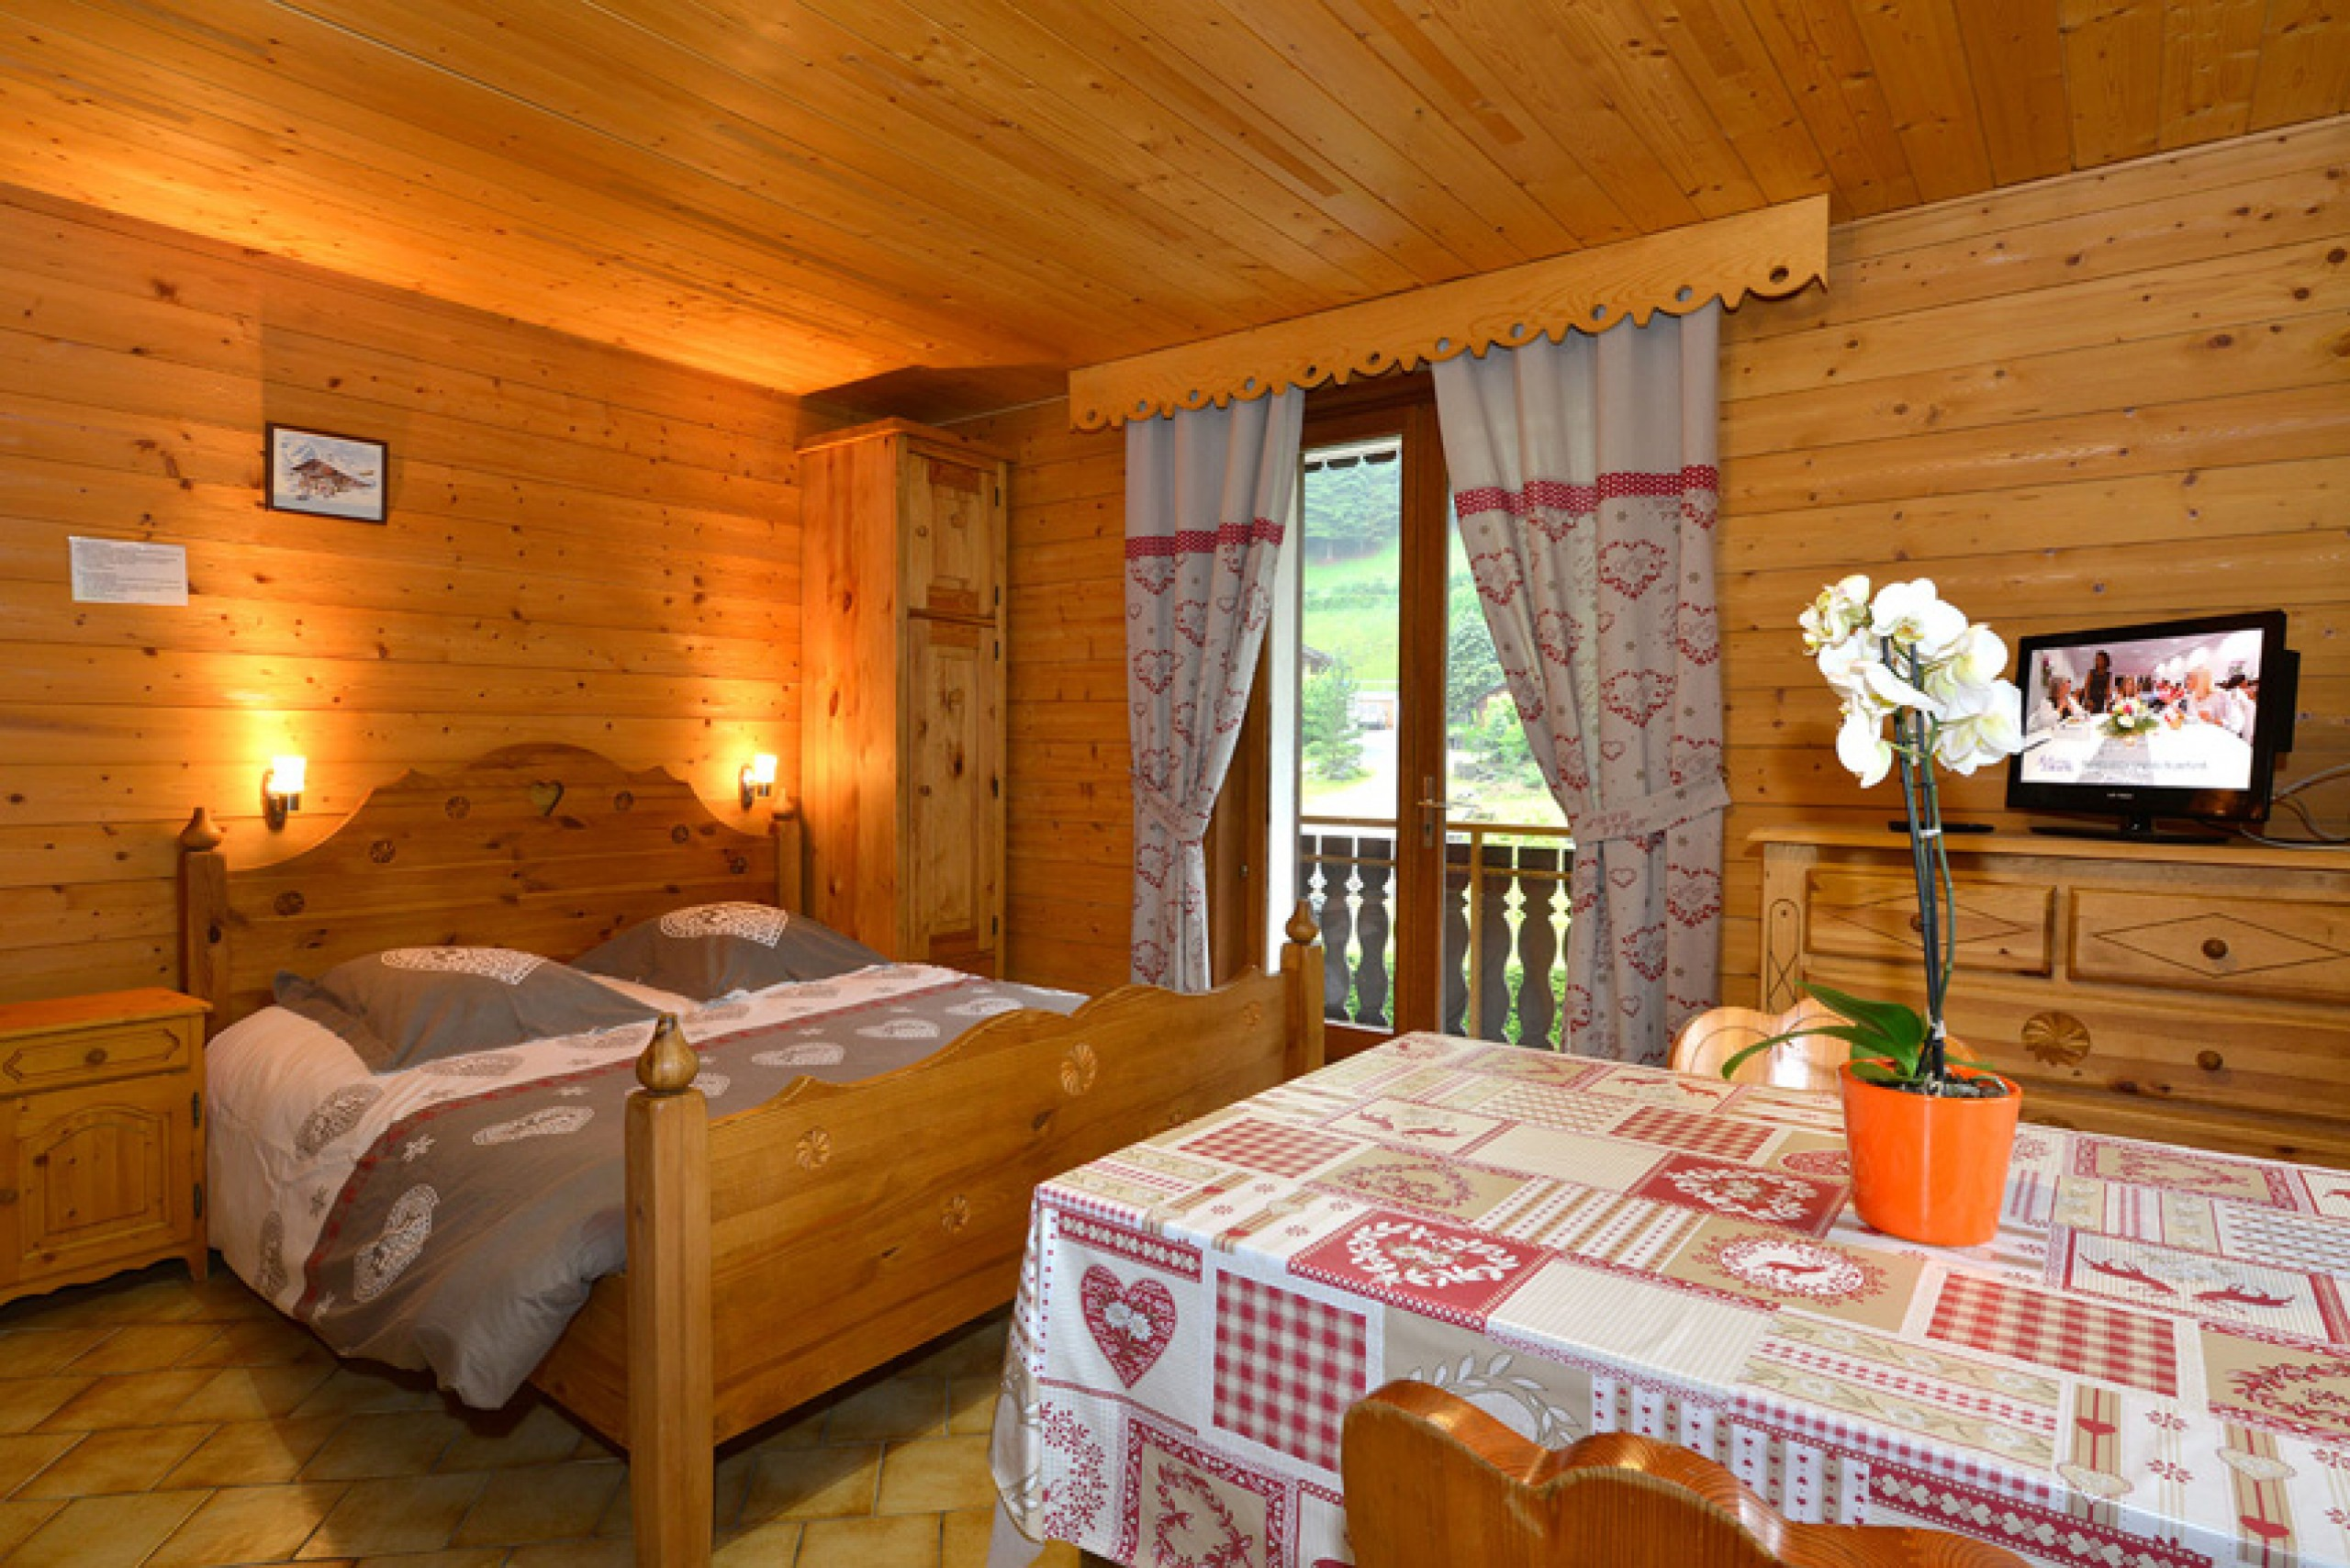 Appart 39 hotel la fleche d 39 or appart 39 hotel 3 etoiles for Hotel ou appart hotel